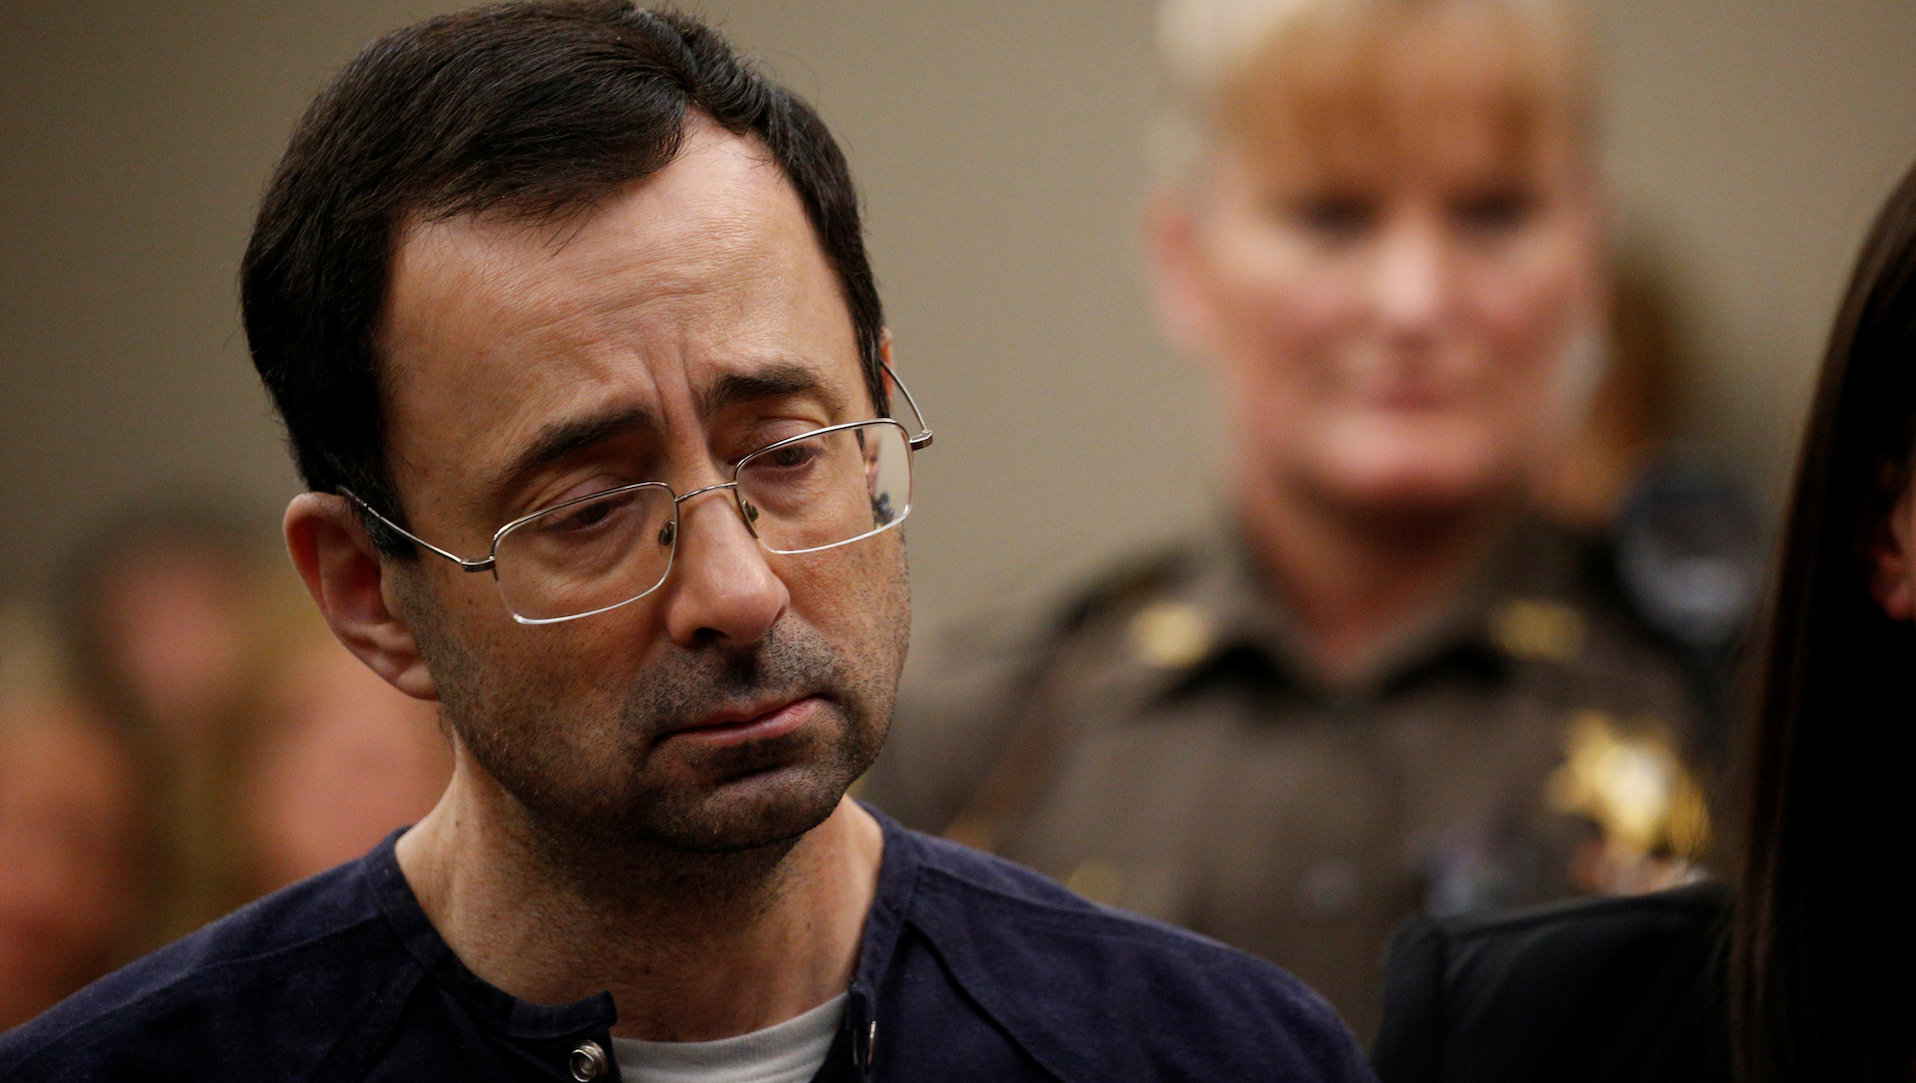 Larry Nassar, former USA Gymnastics doctor, sentenced to 40-175 years for sex crimes